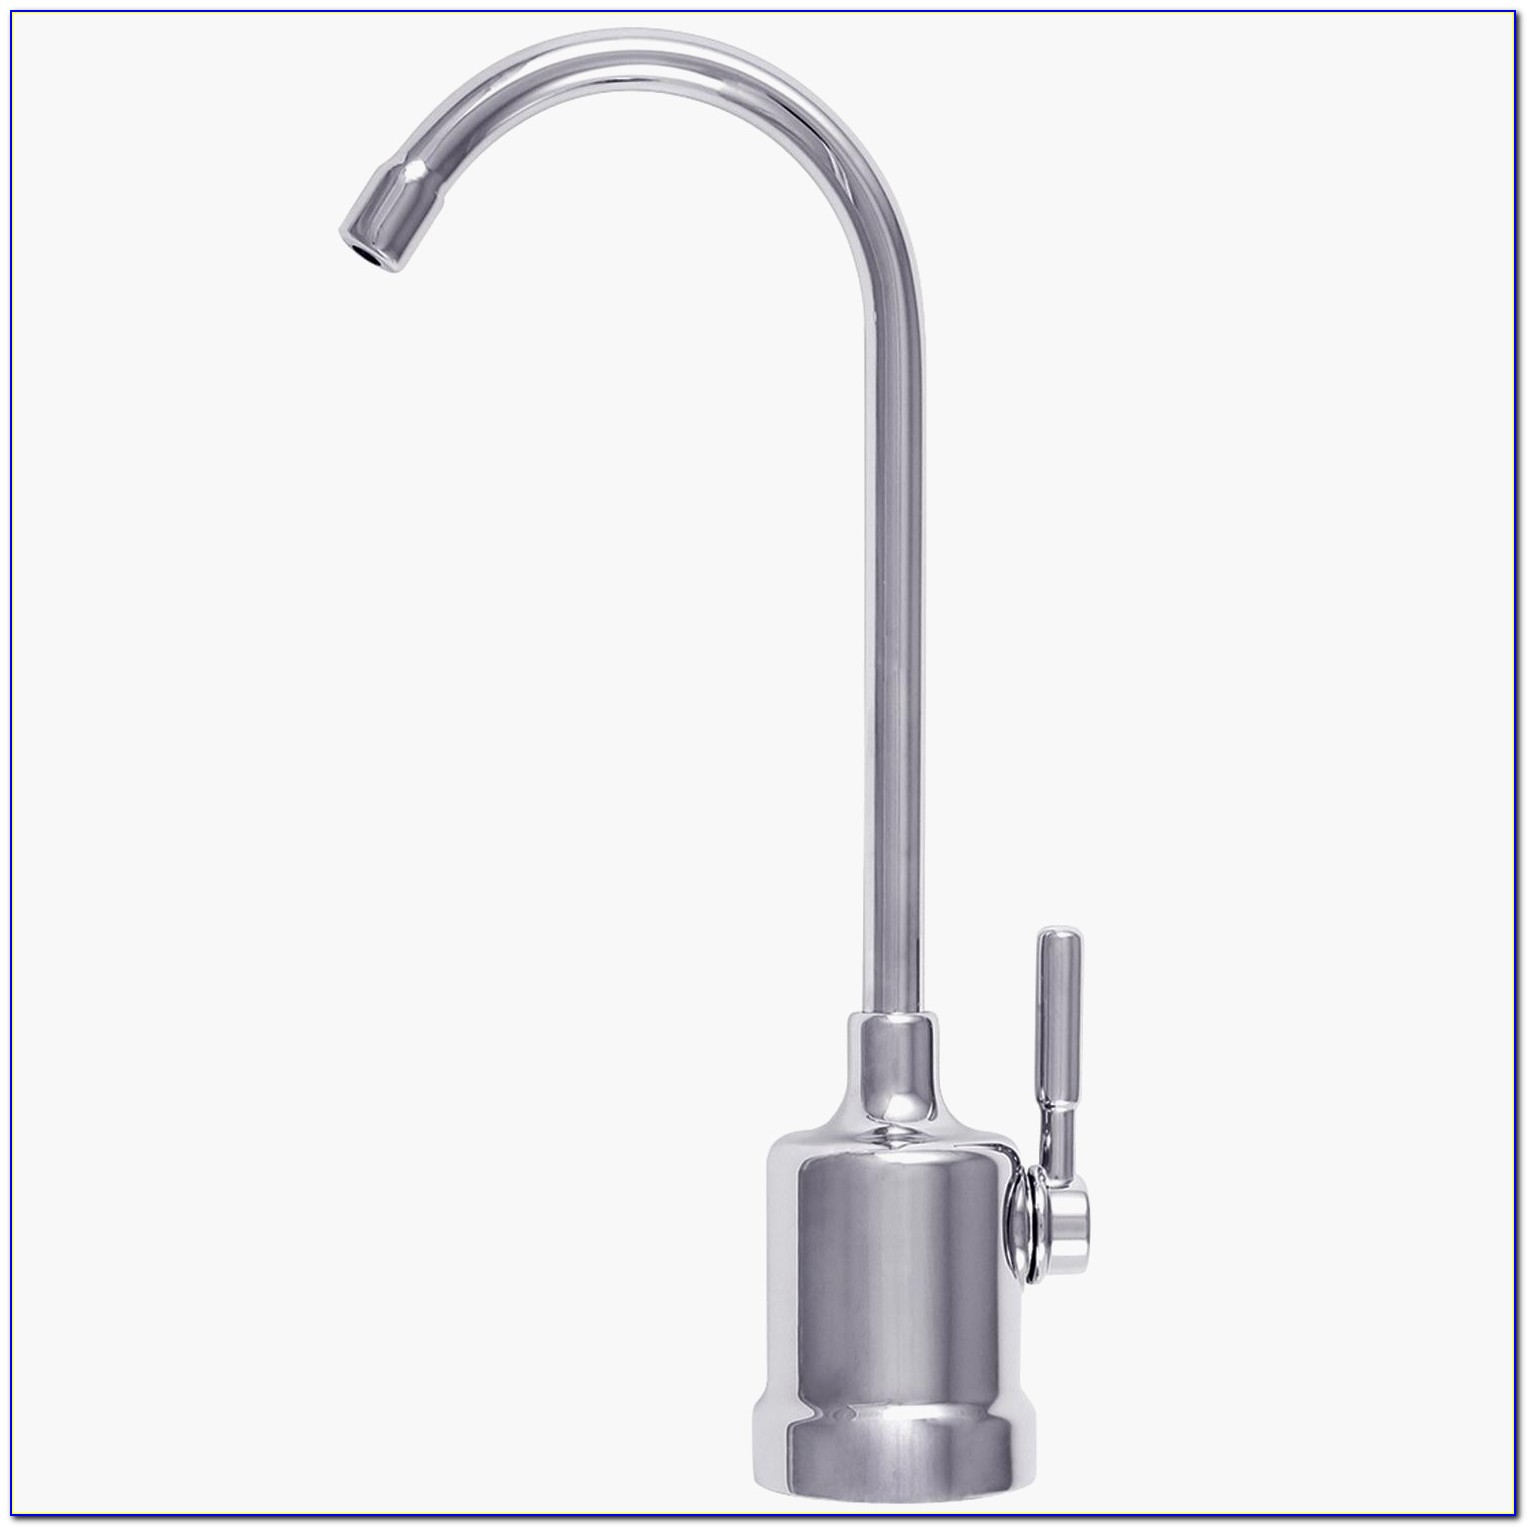 Reverse Osmosis Faucets Unique Reverse Osmosis Faucets Stainless Steel